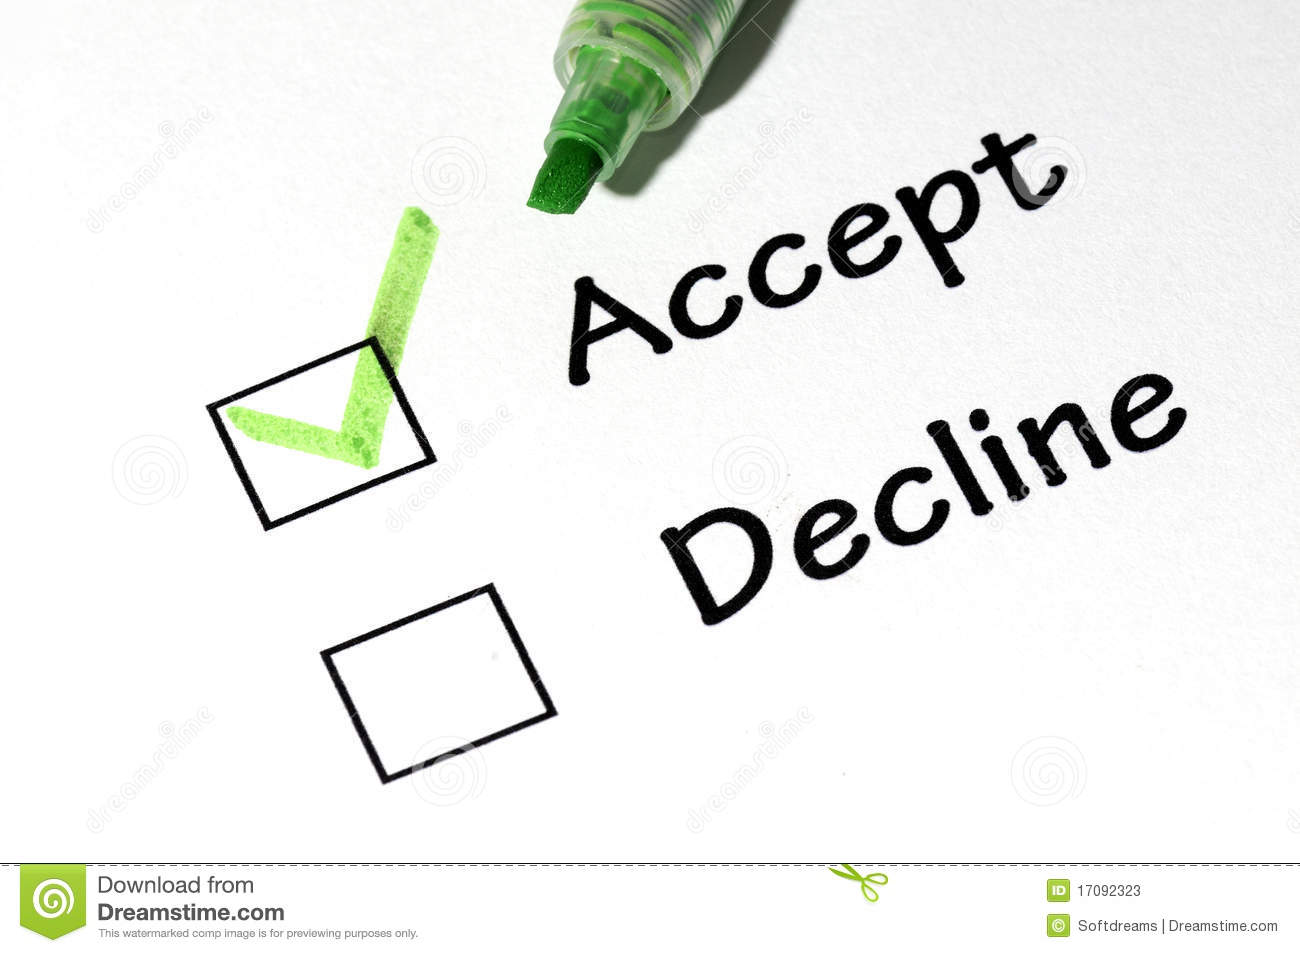 How to Accept or Decline Offer Letter